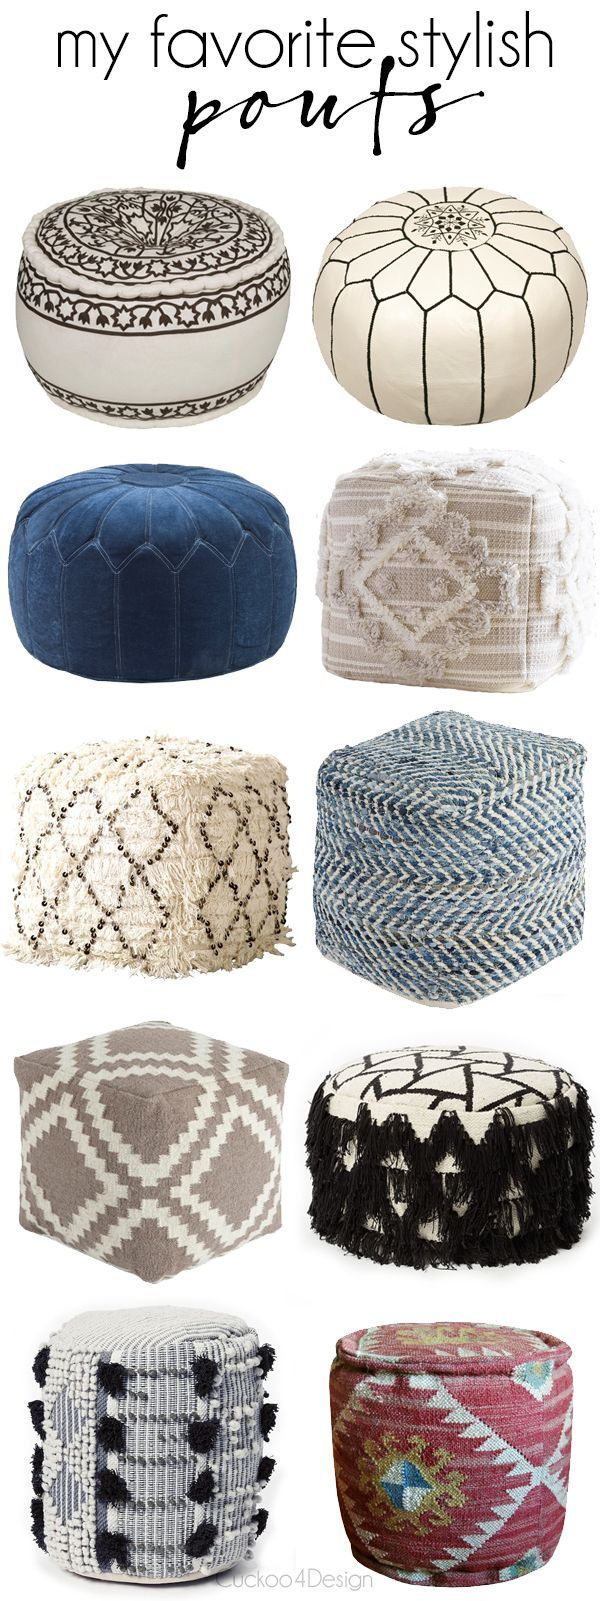 Moda Design Pouf.My Favorite Stylish Poufs Bedroomideas Home Decorating